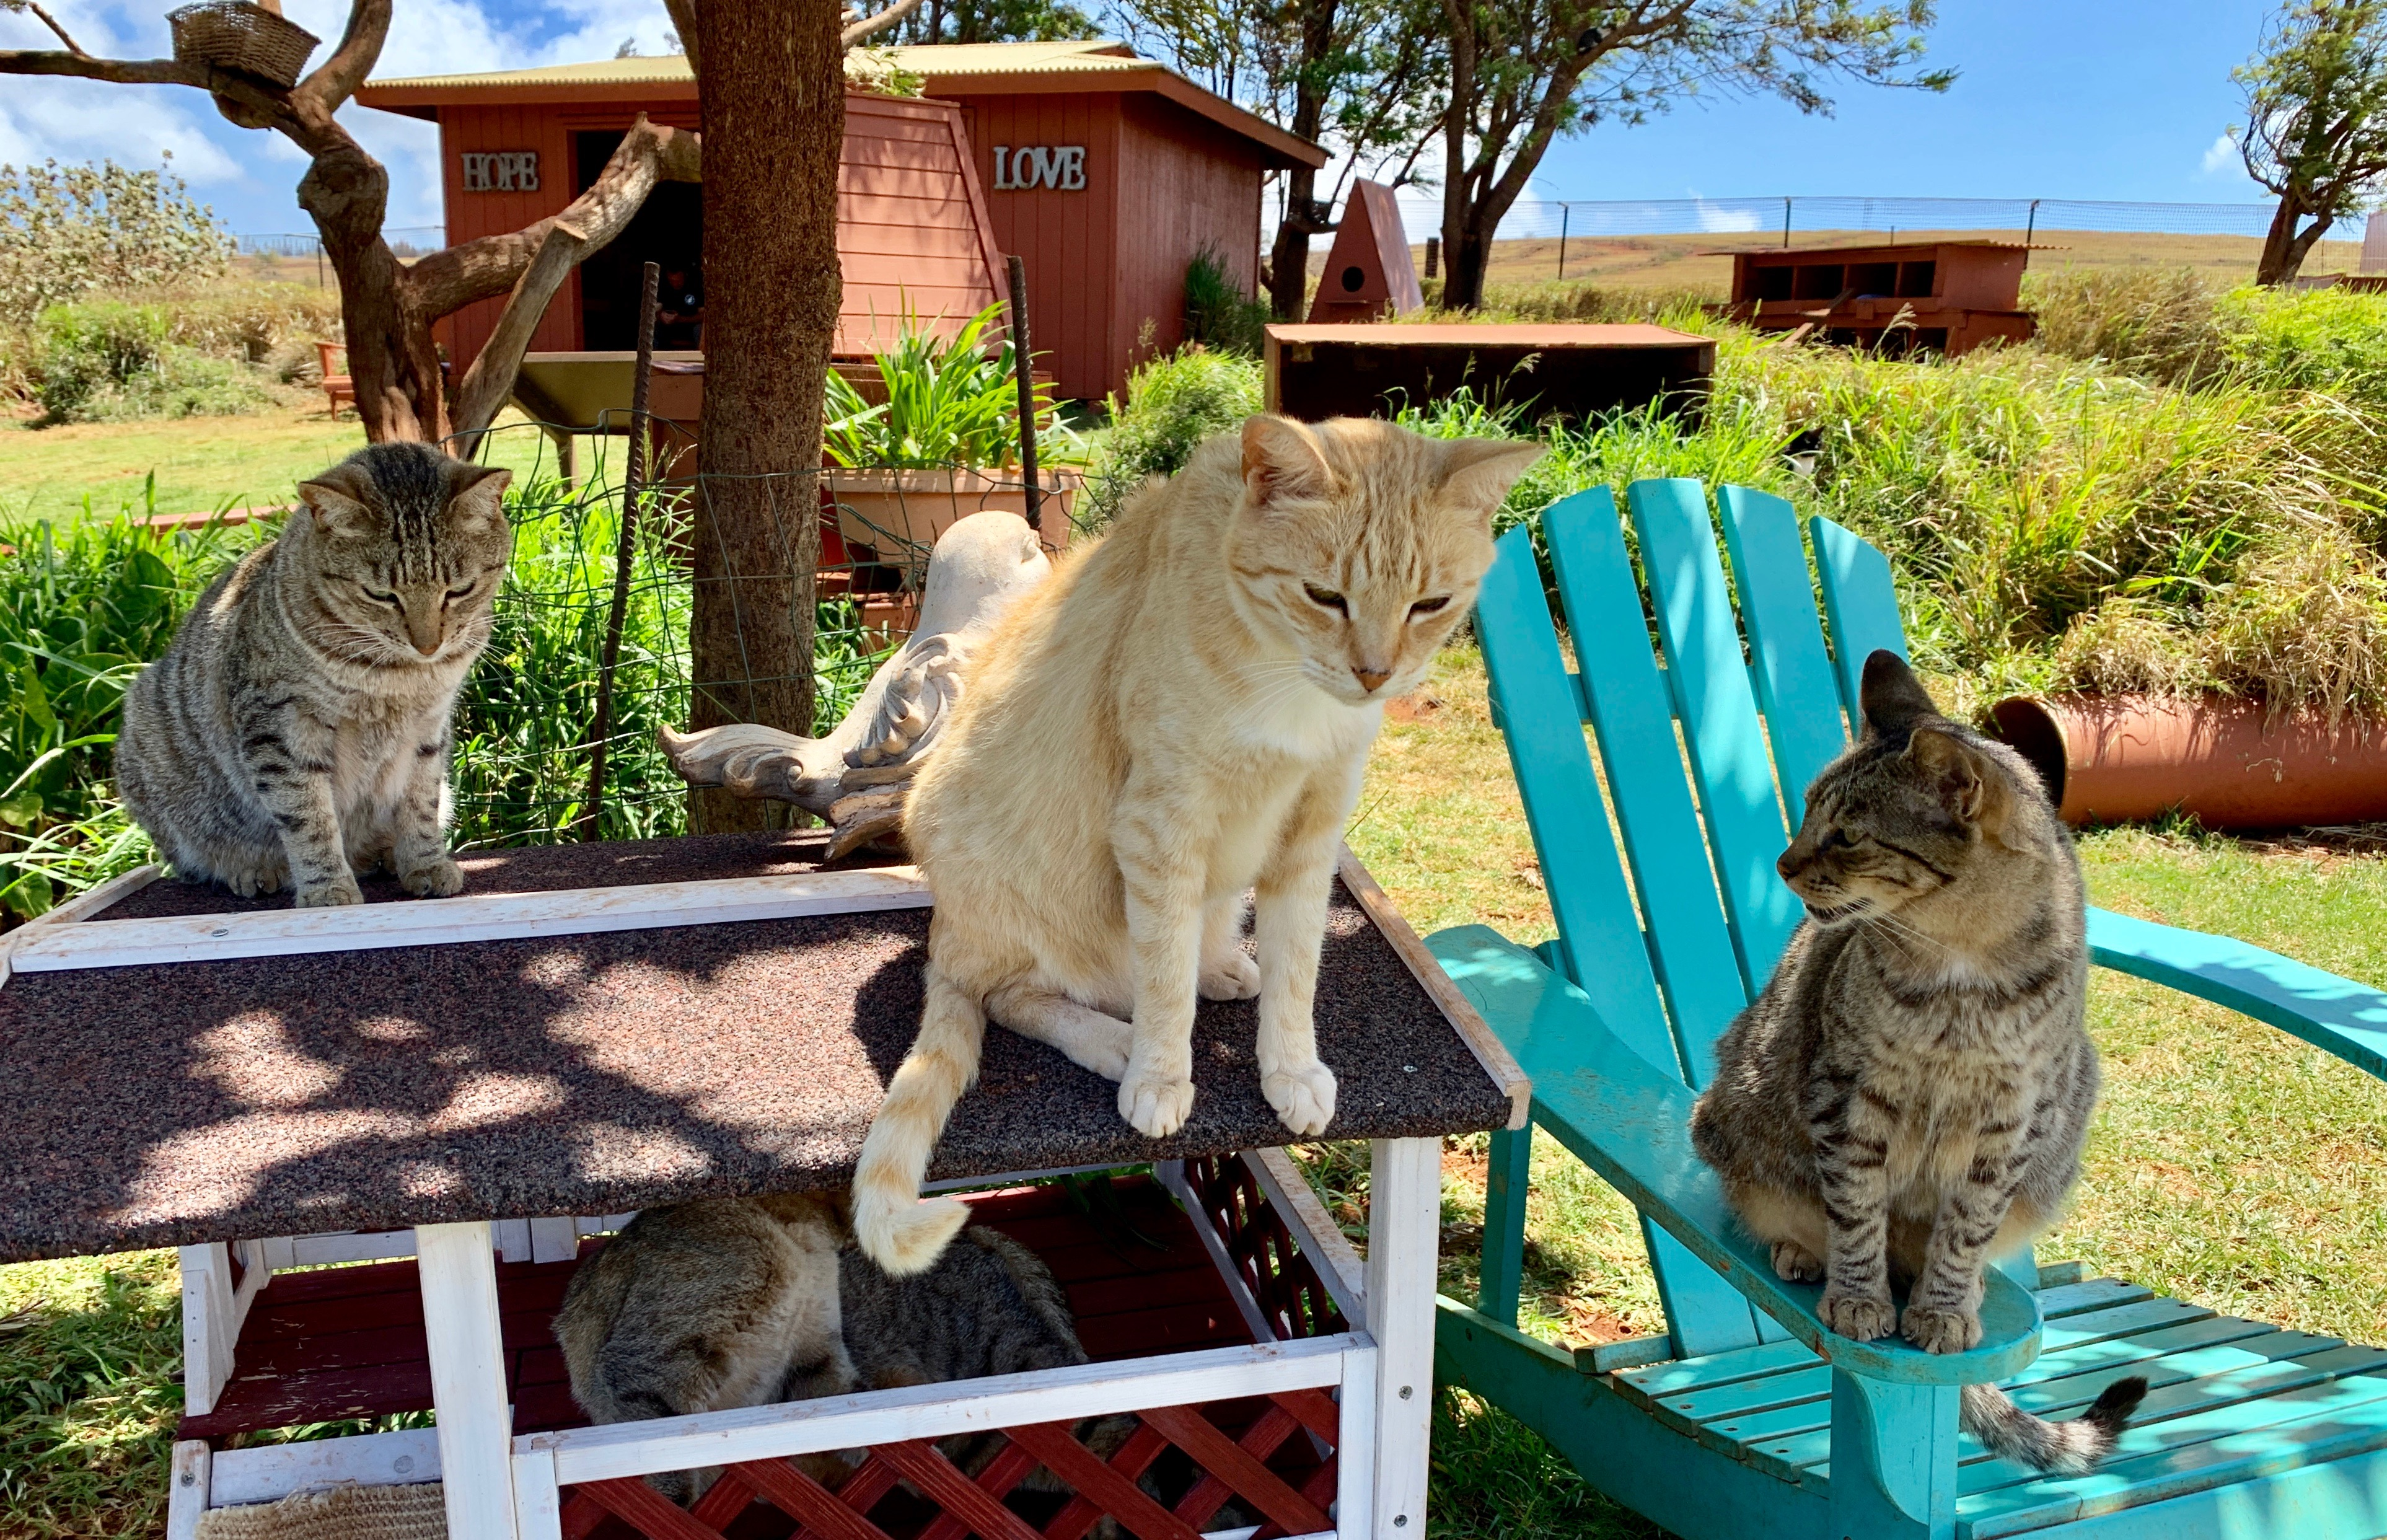 Welcome to Catopia, where more than 600 cats roam, eat, and snooze